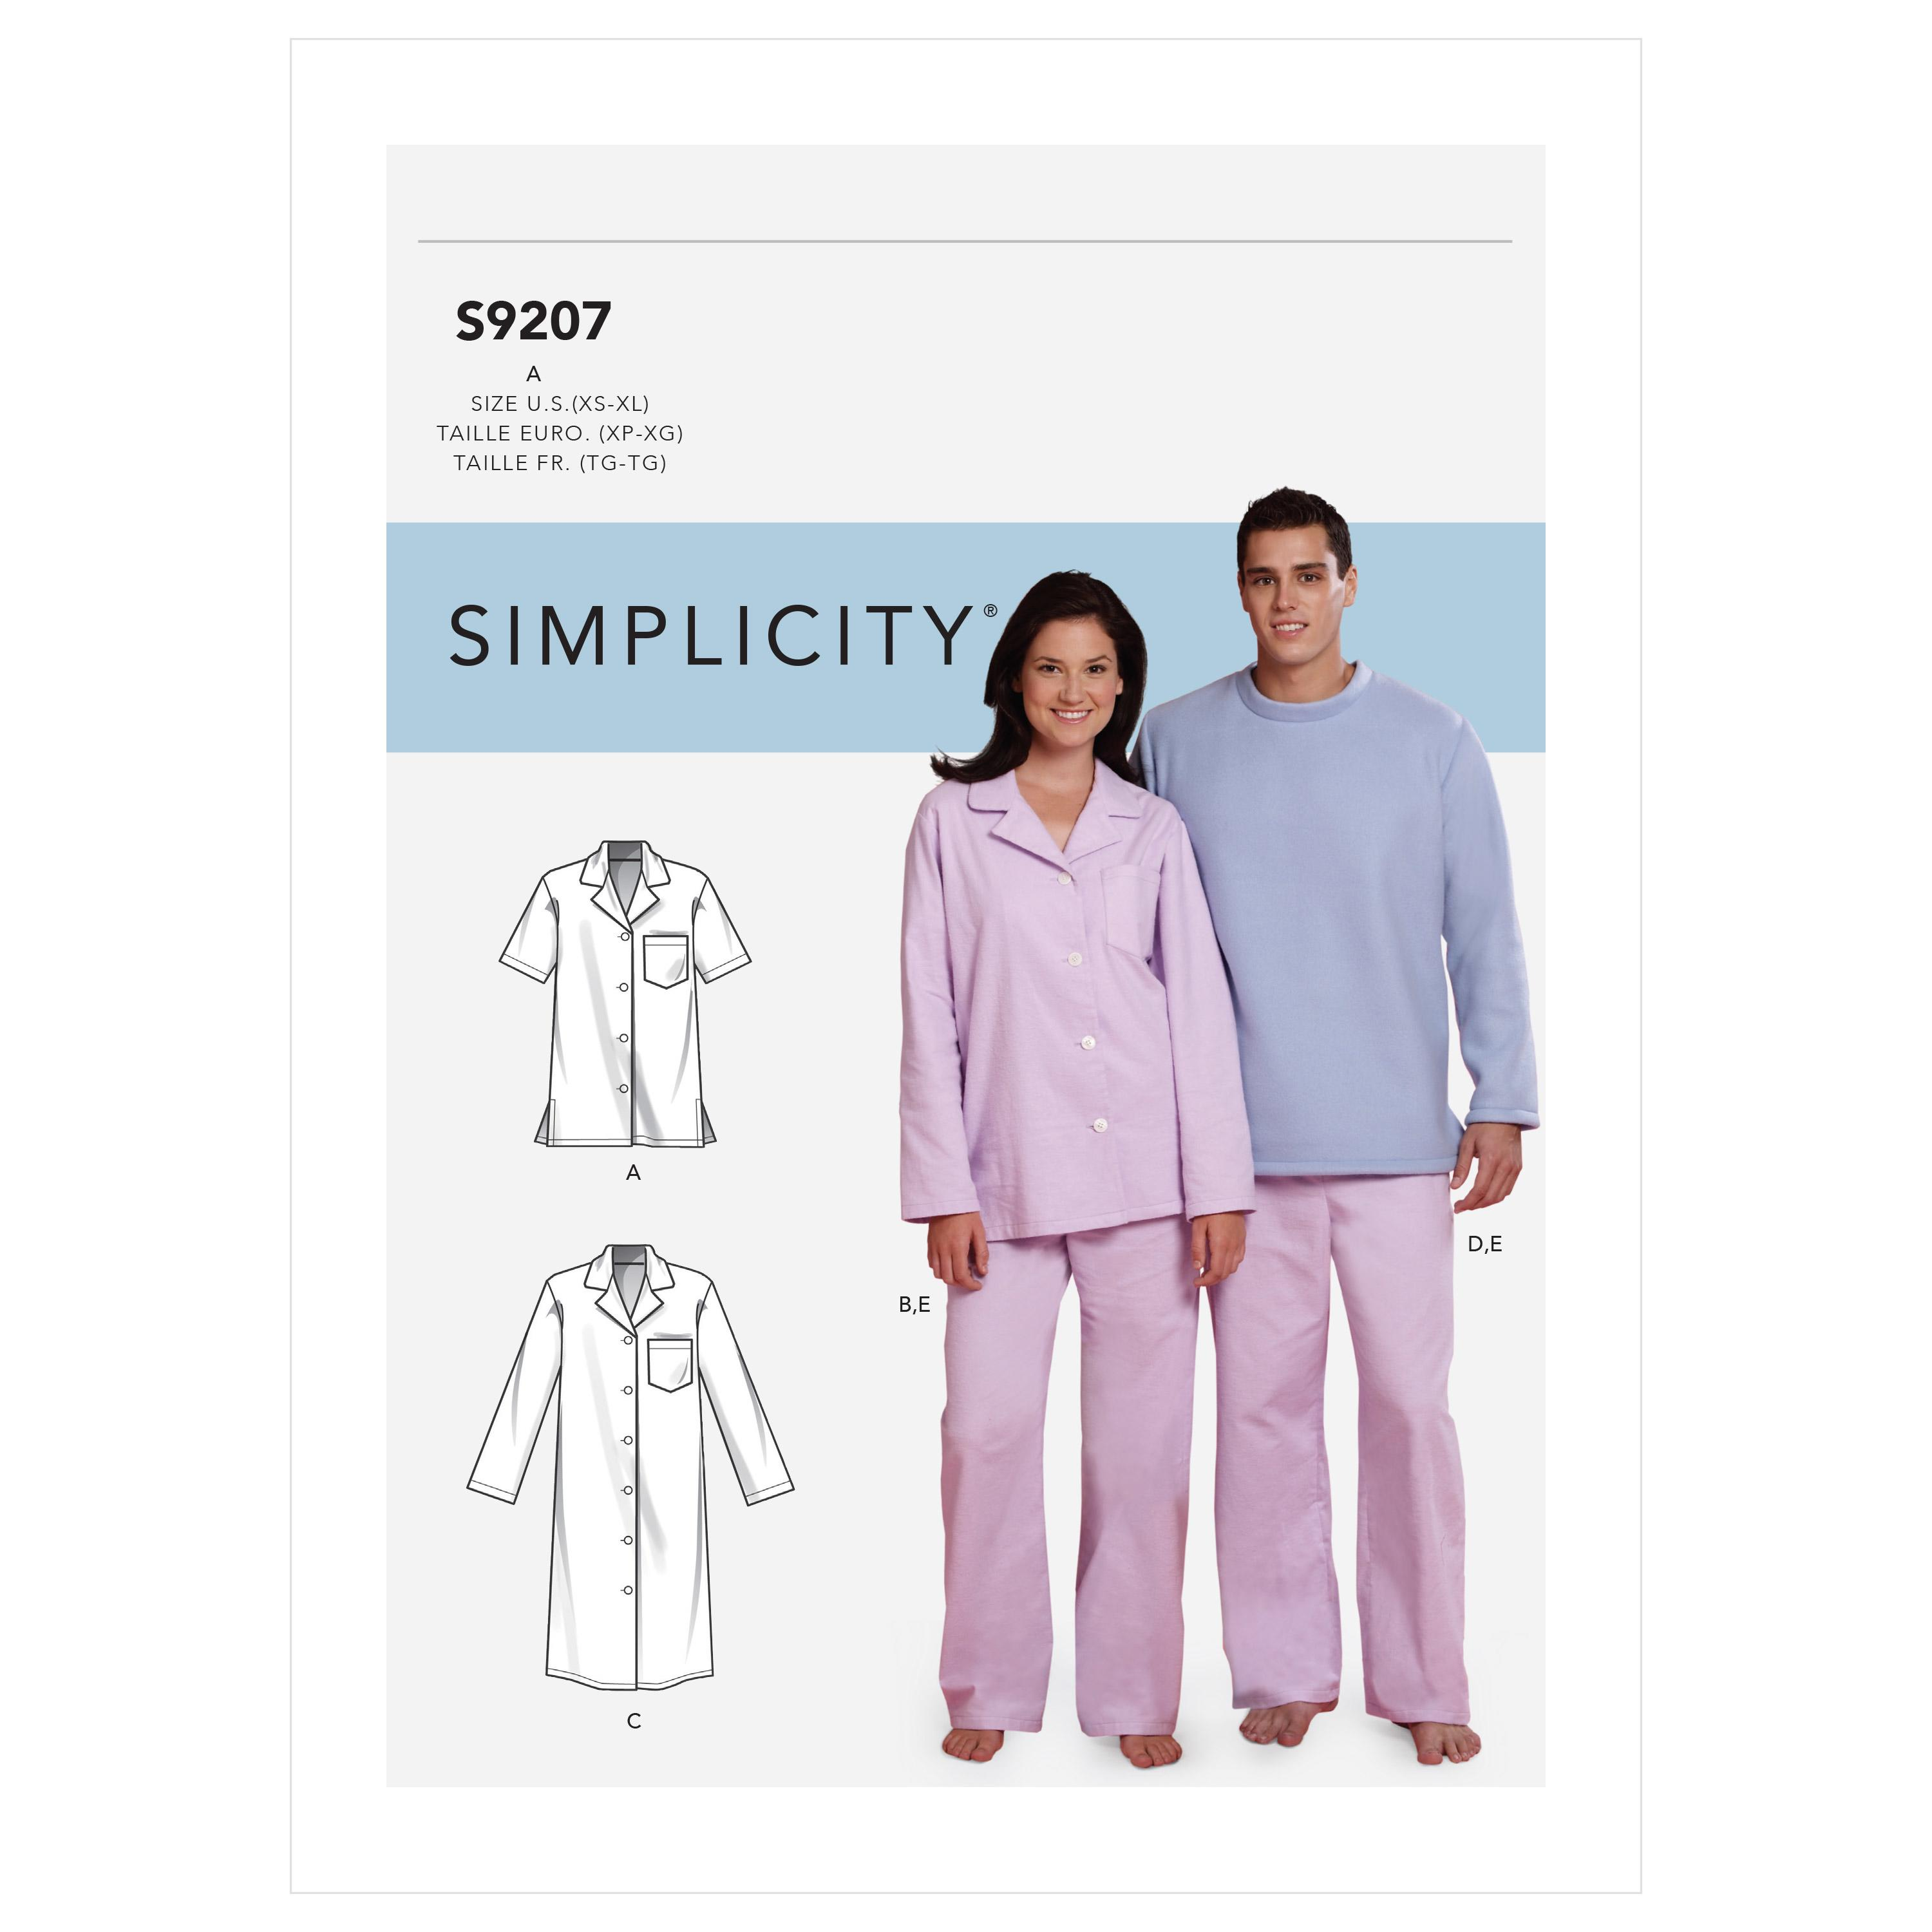 Simplicity S9207 Misses'/Men's Tops, Nightshirt, Pants and Sweatsuit For Dog